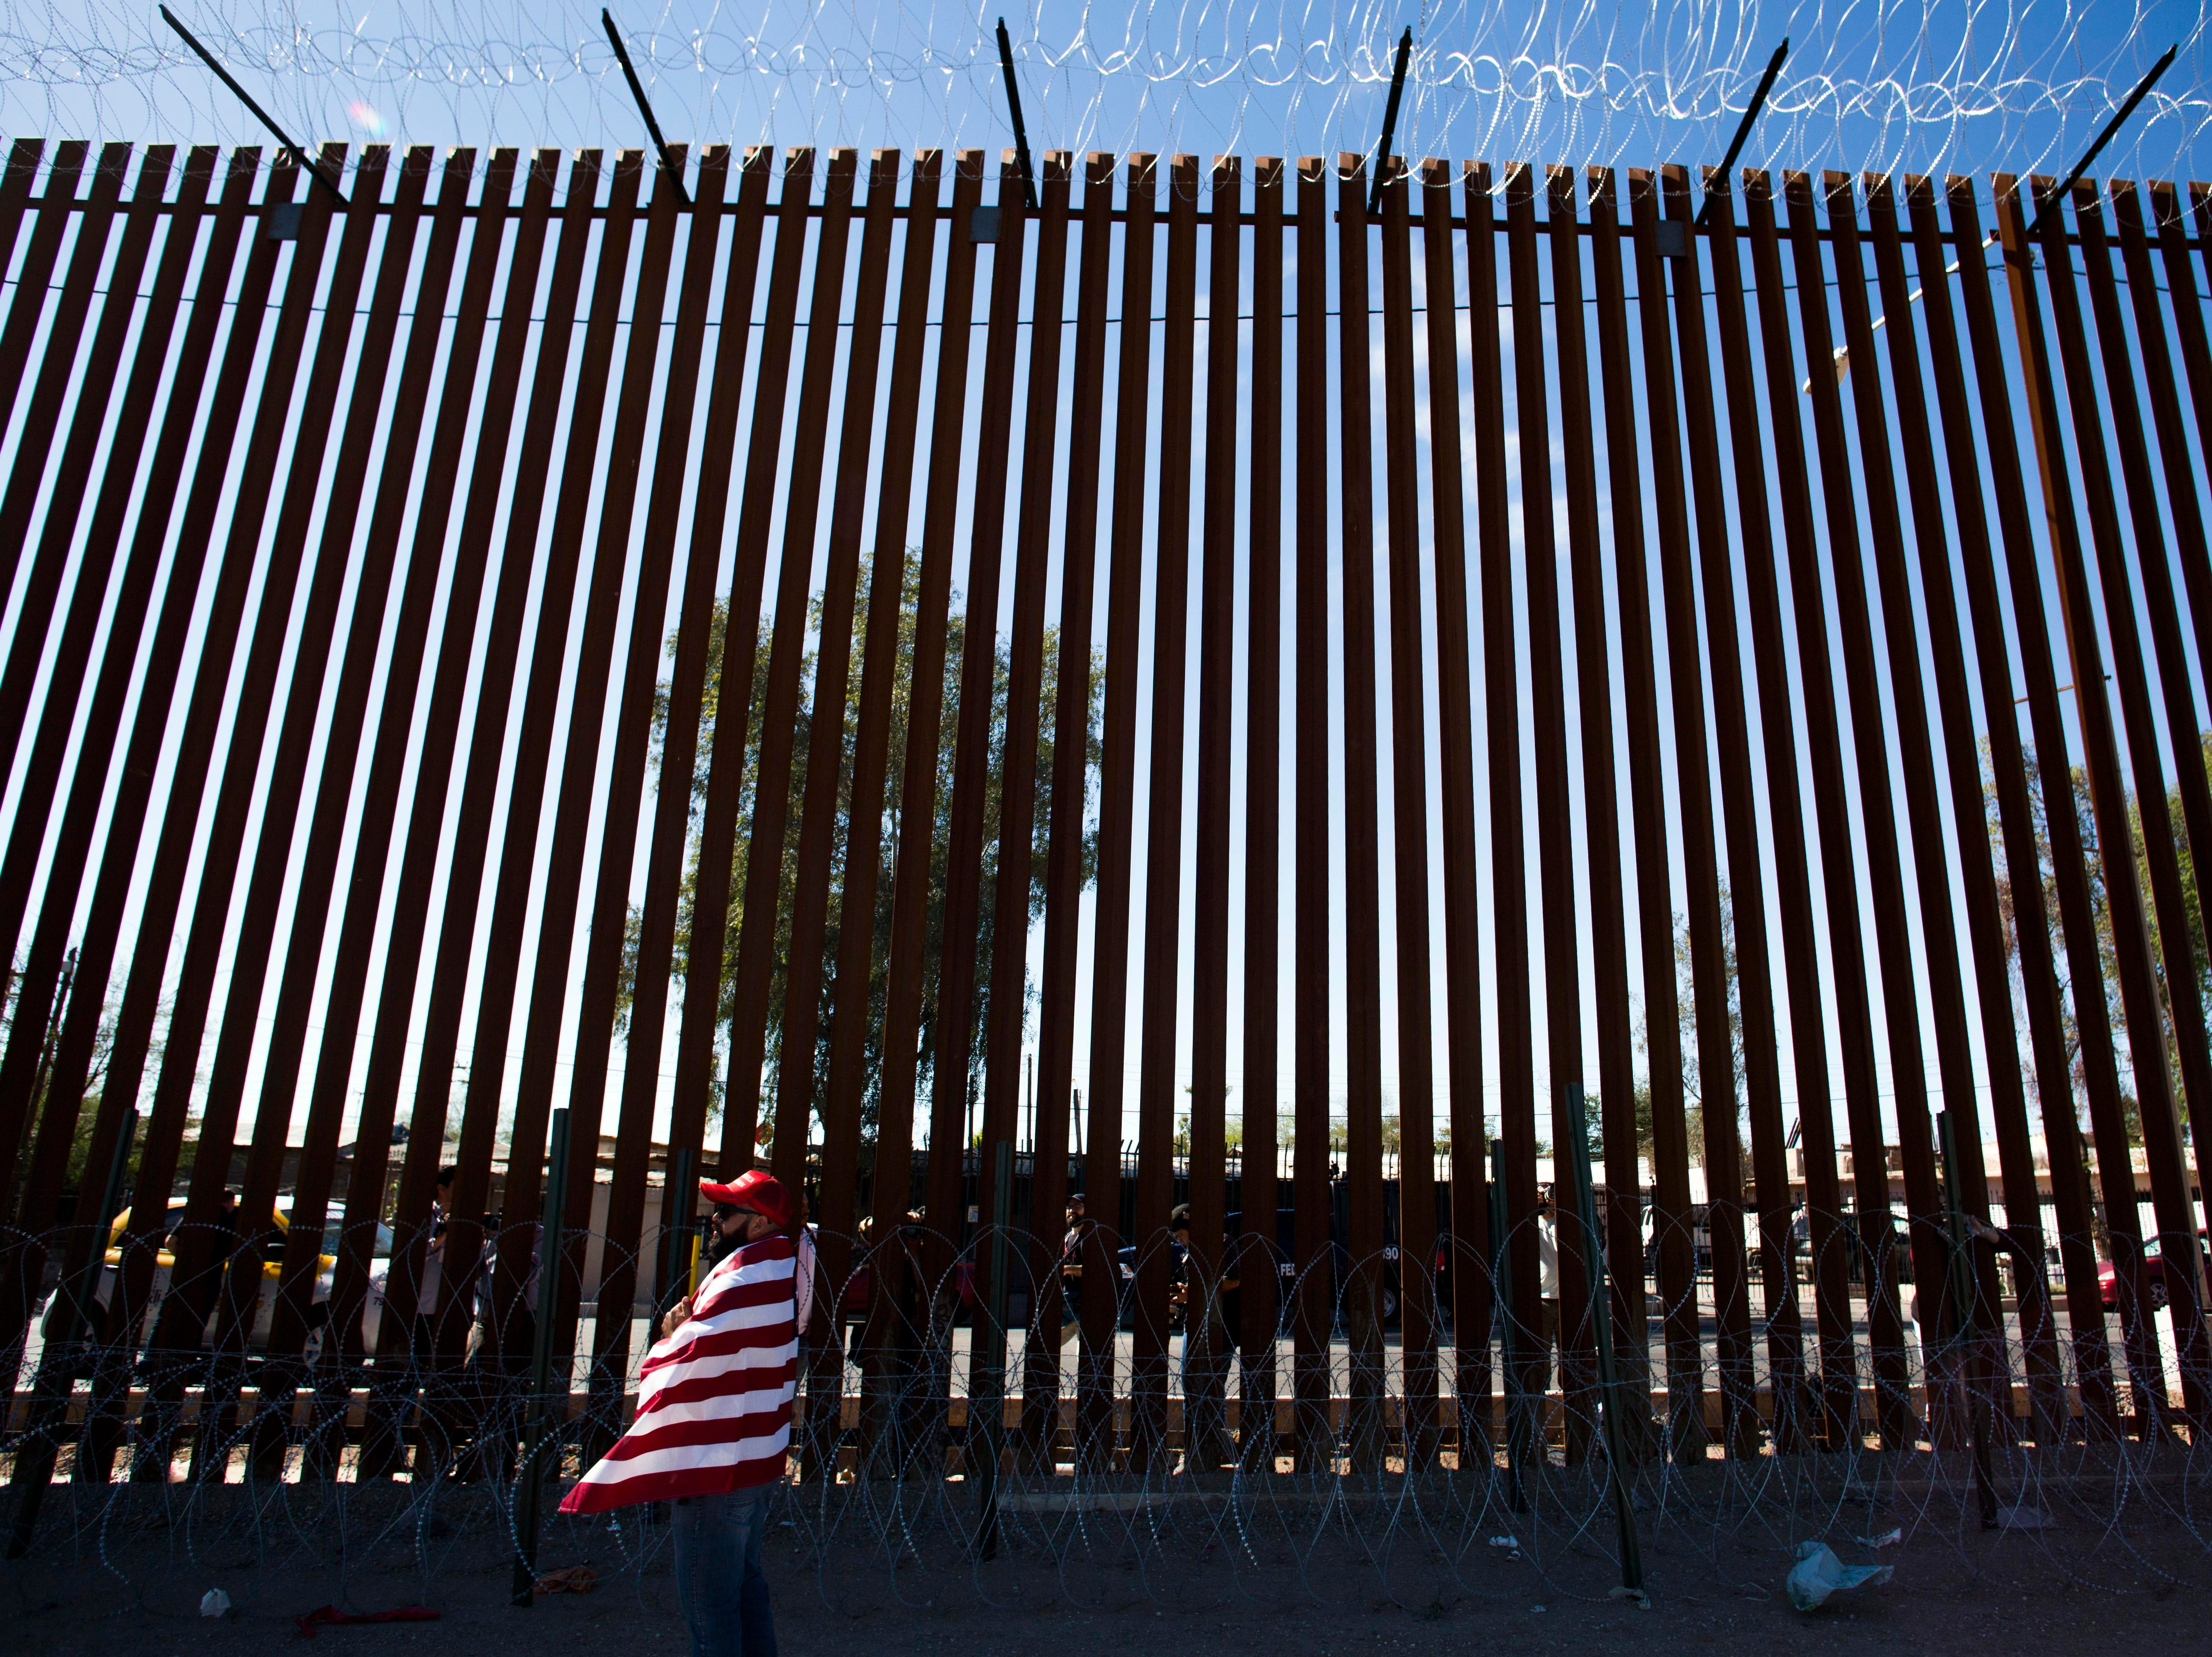 Ed Ramos, a trump supporter stands in front of the wall separating the U.S. and Mexico during President Donald Trump's visit to the border town of Calexico, Calif.